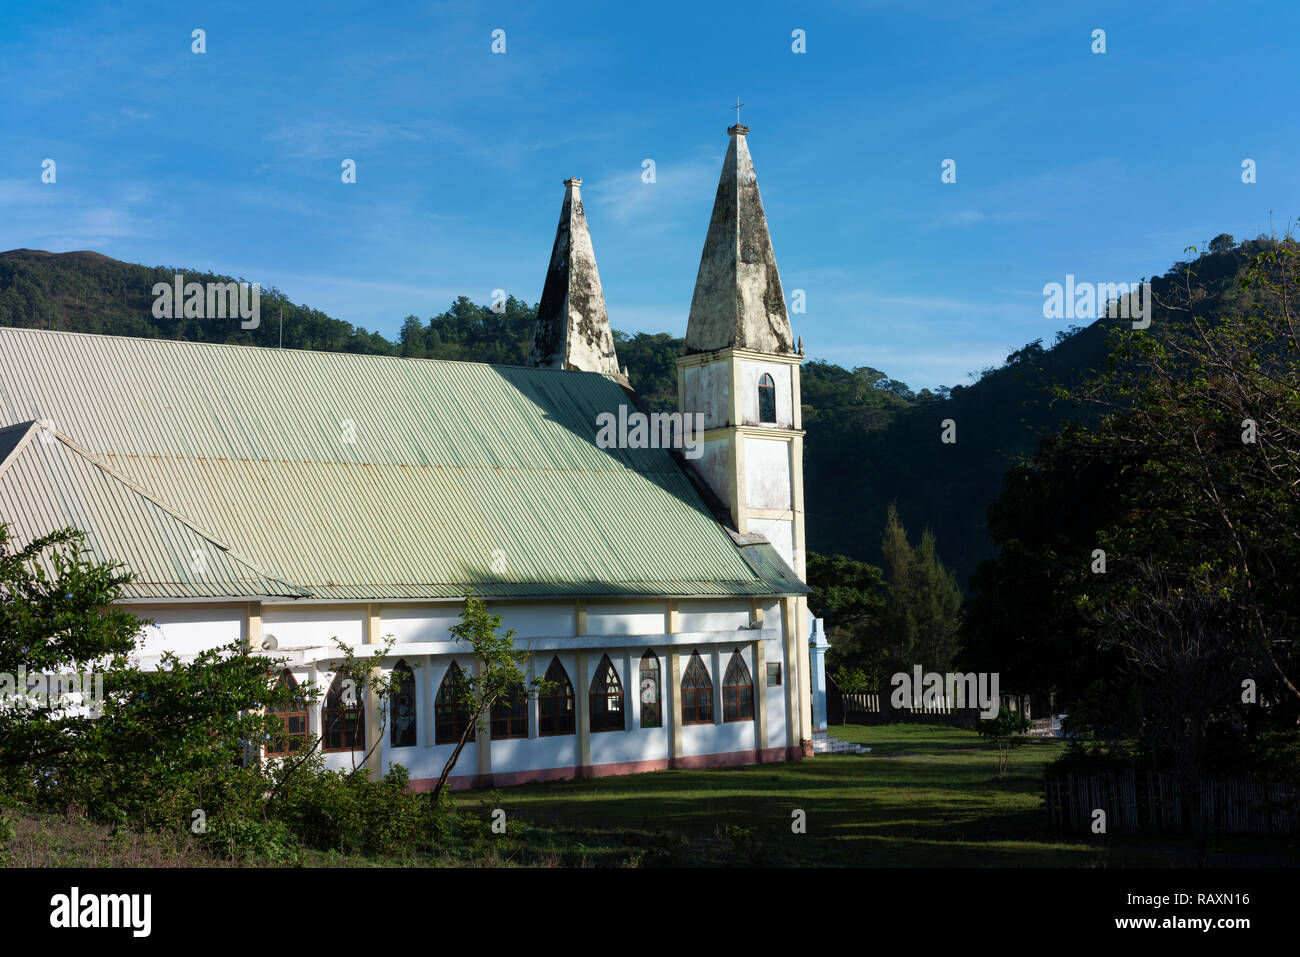 A Portuguese church high in the mountains in central Timor Leste. - Stock Image